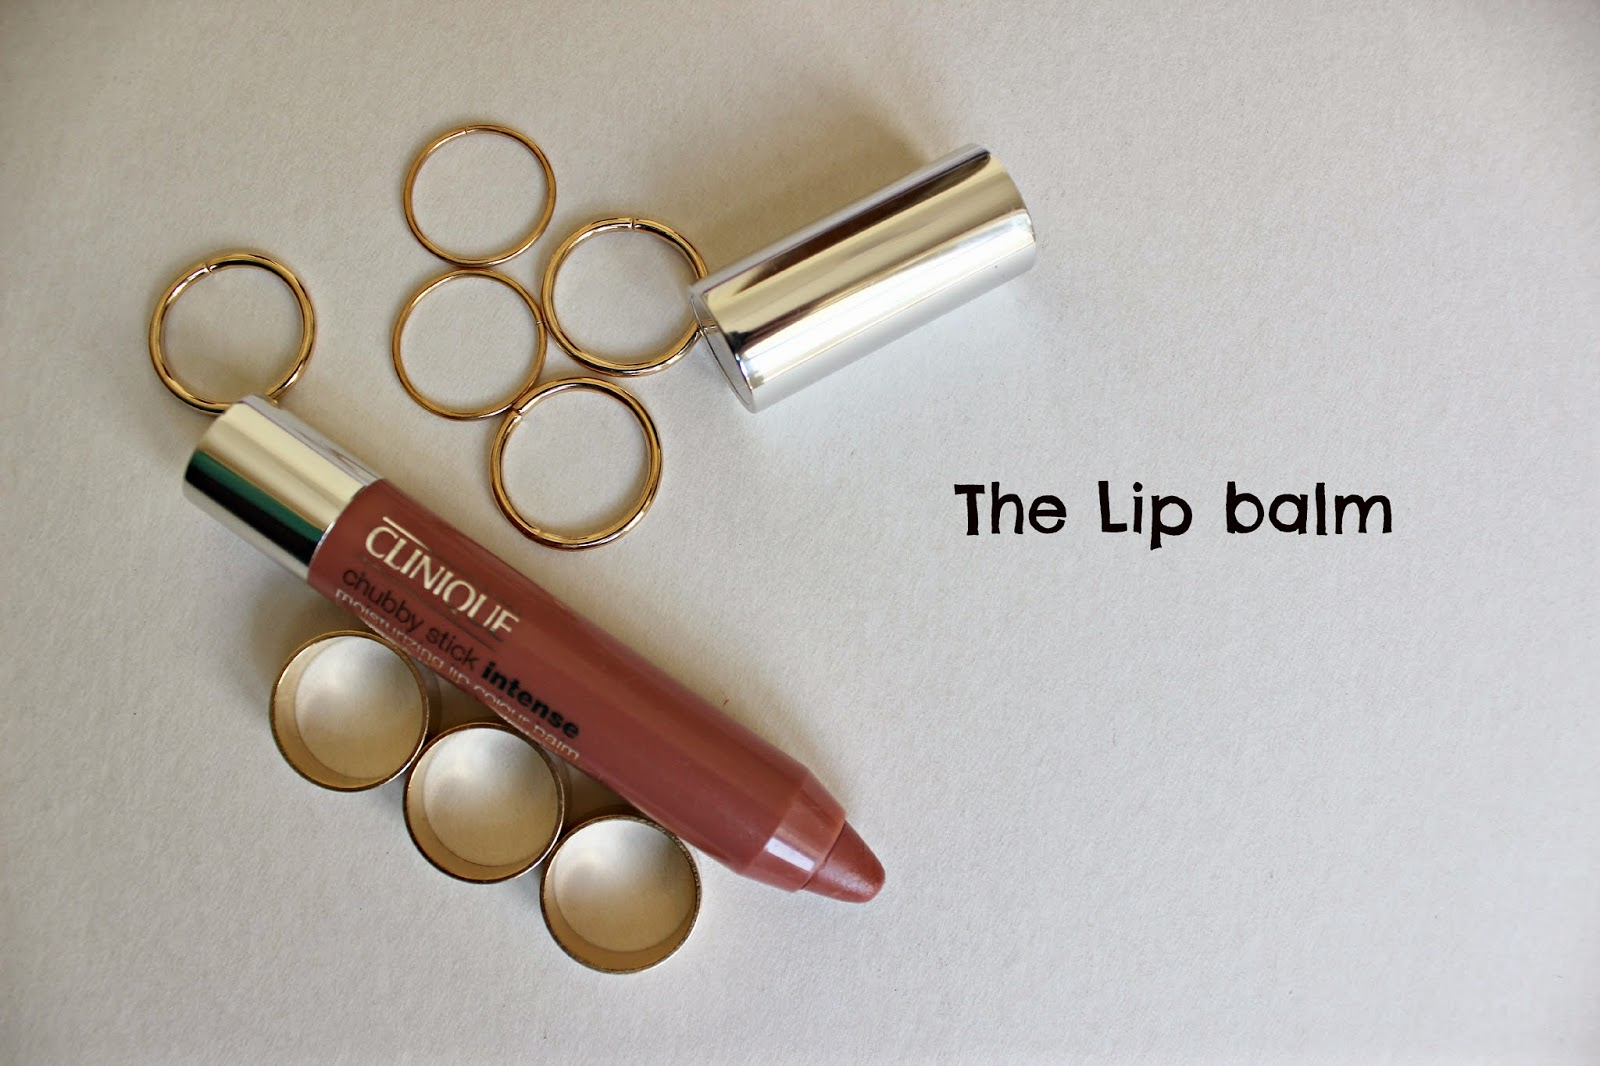 Spring Summer Beauty Clinique Lip balm